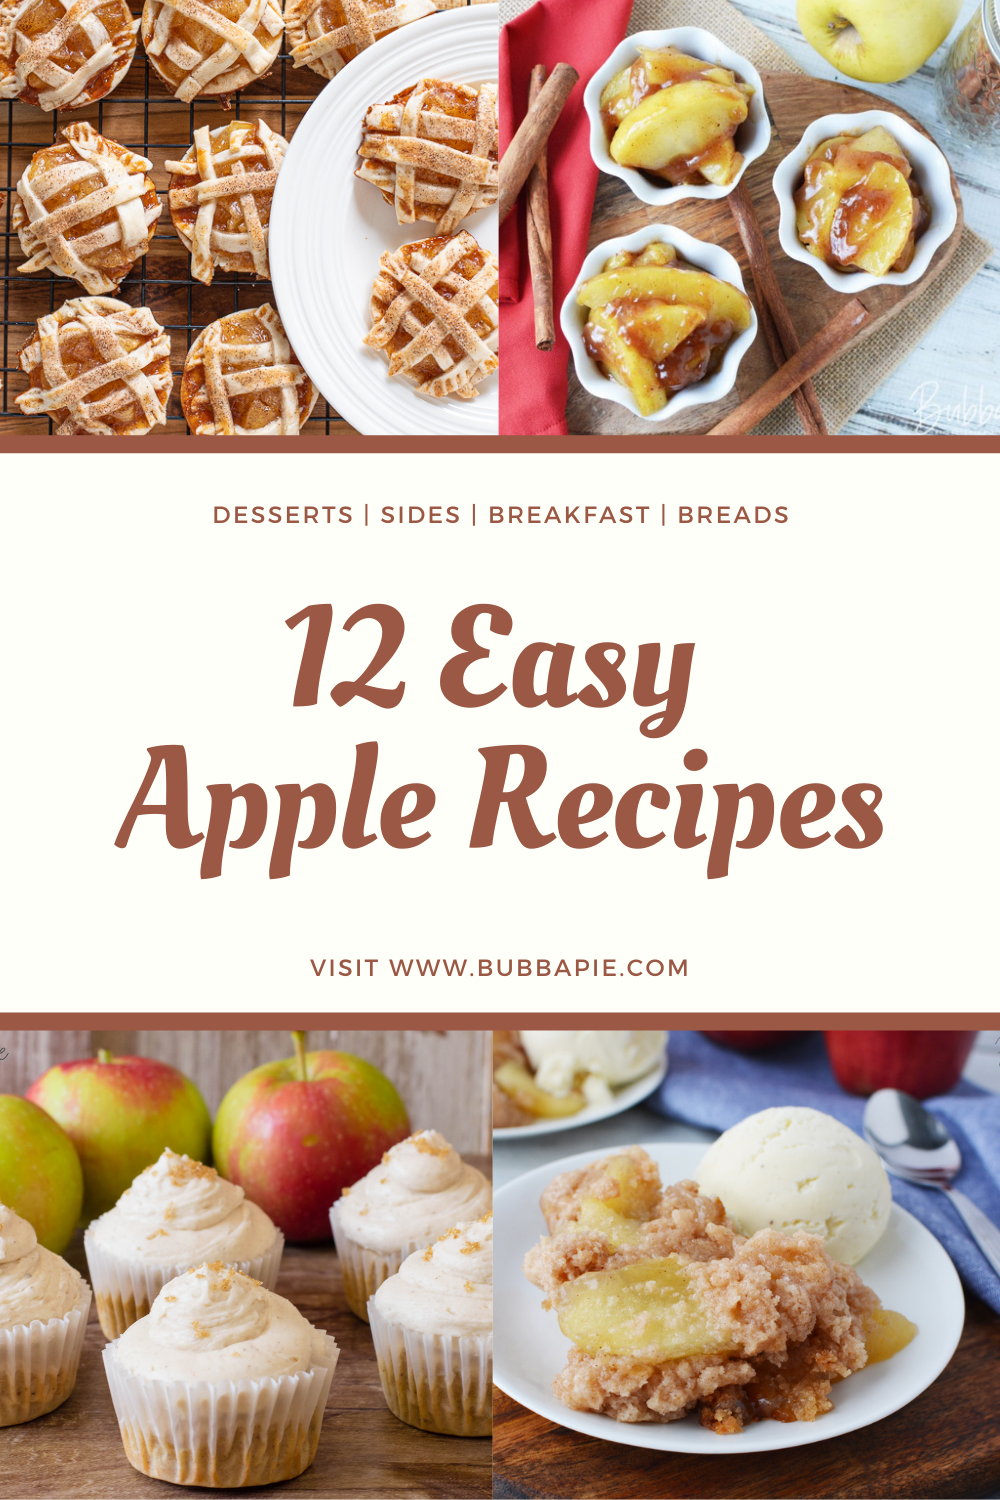 Easy Apple Recipes-desserts, breads, breakfasts and sides